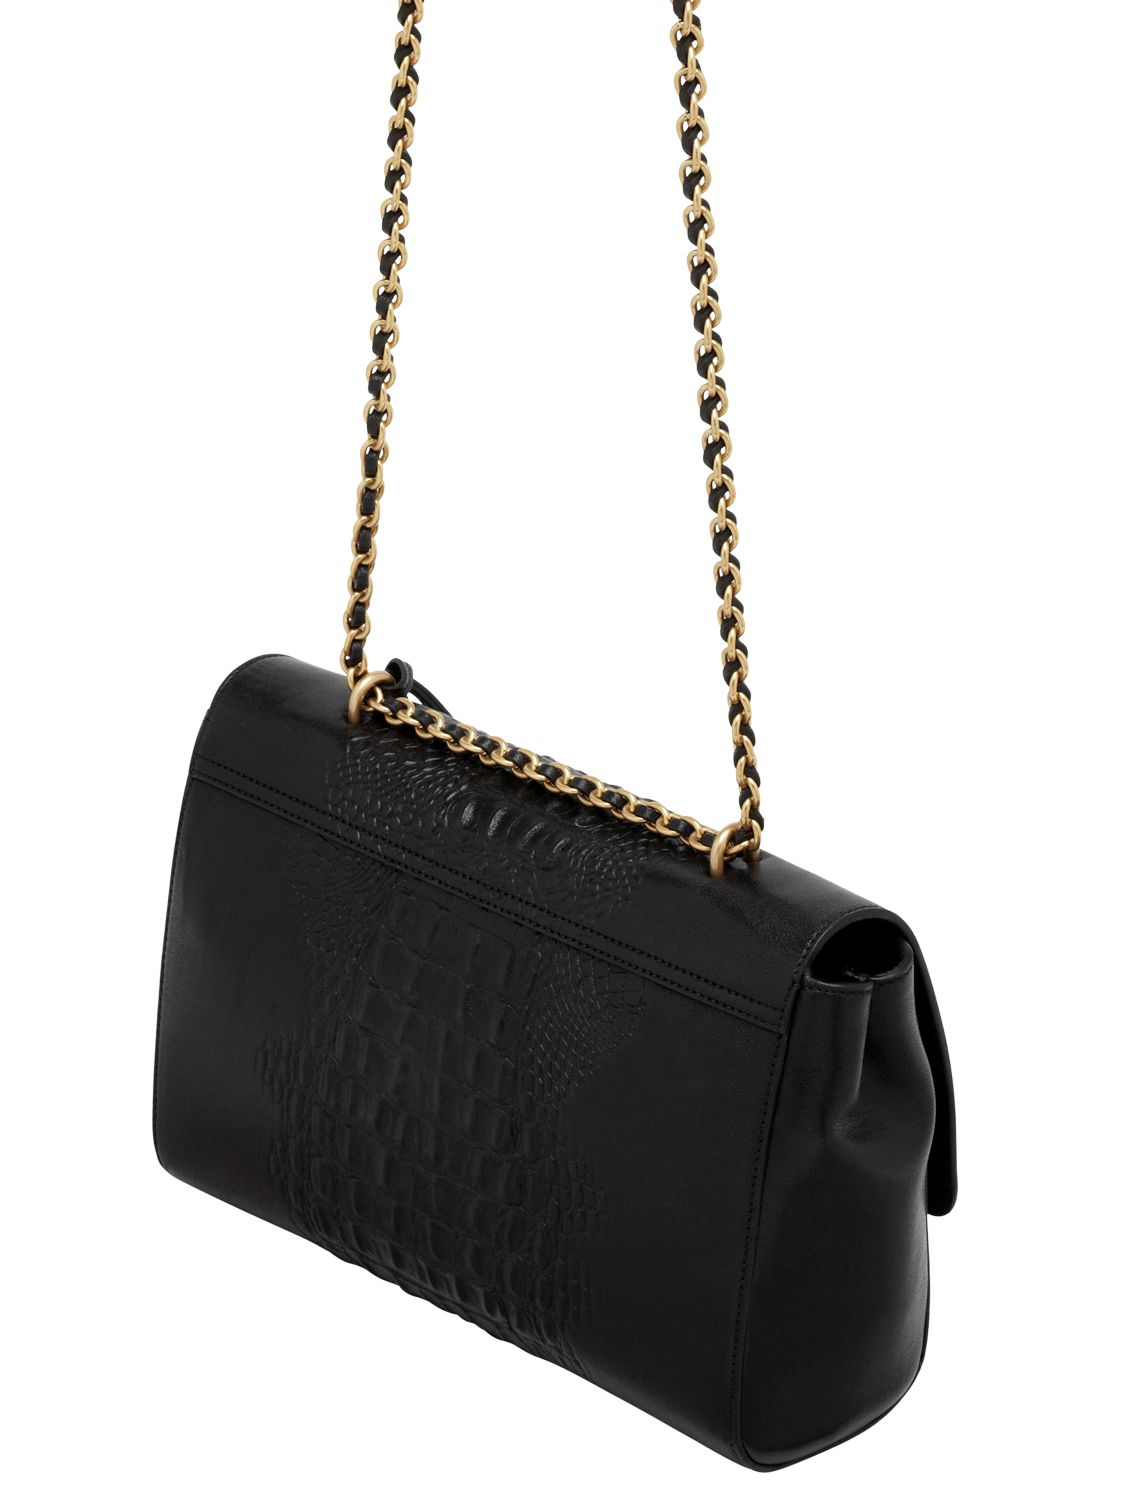 2540833a25c2 ... order lyst mulberry medium lily croc nappa leather bag in black 11850  a85e2